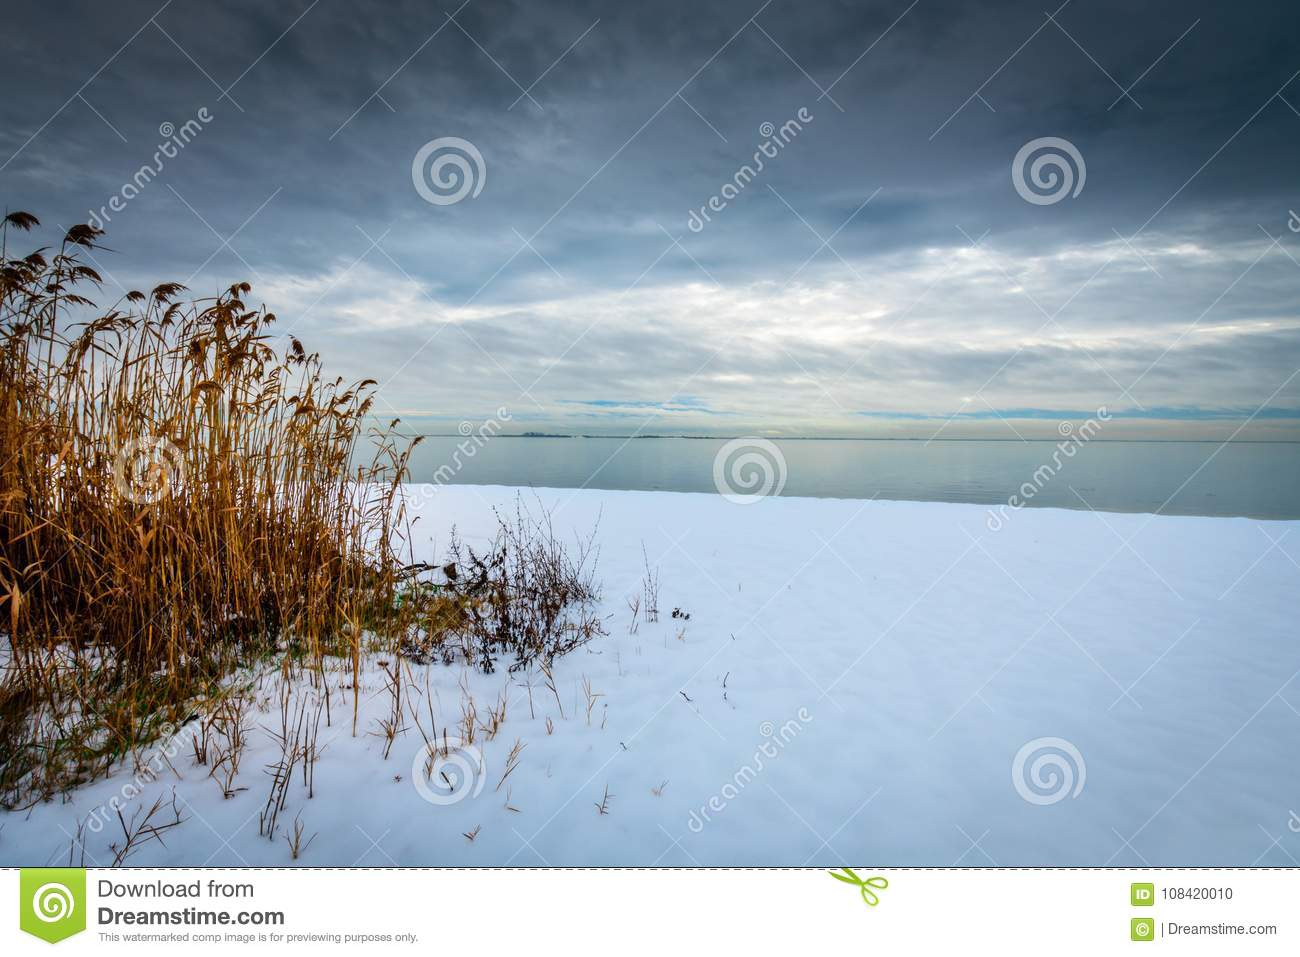 Reeds on a snowy shoreline.